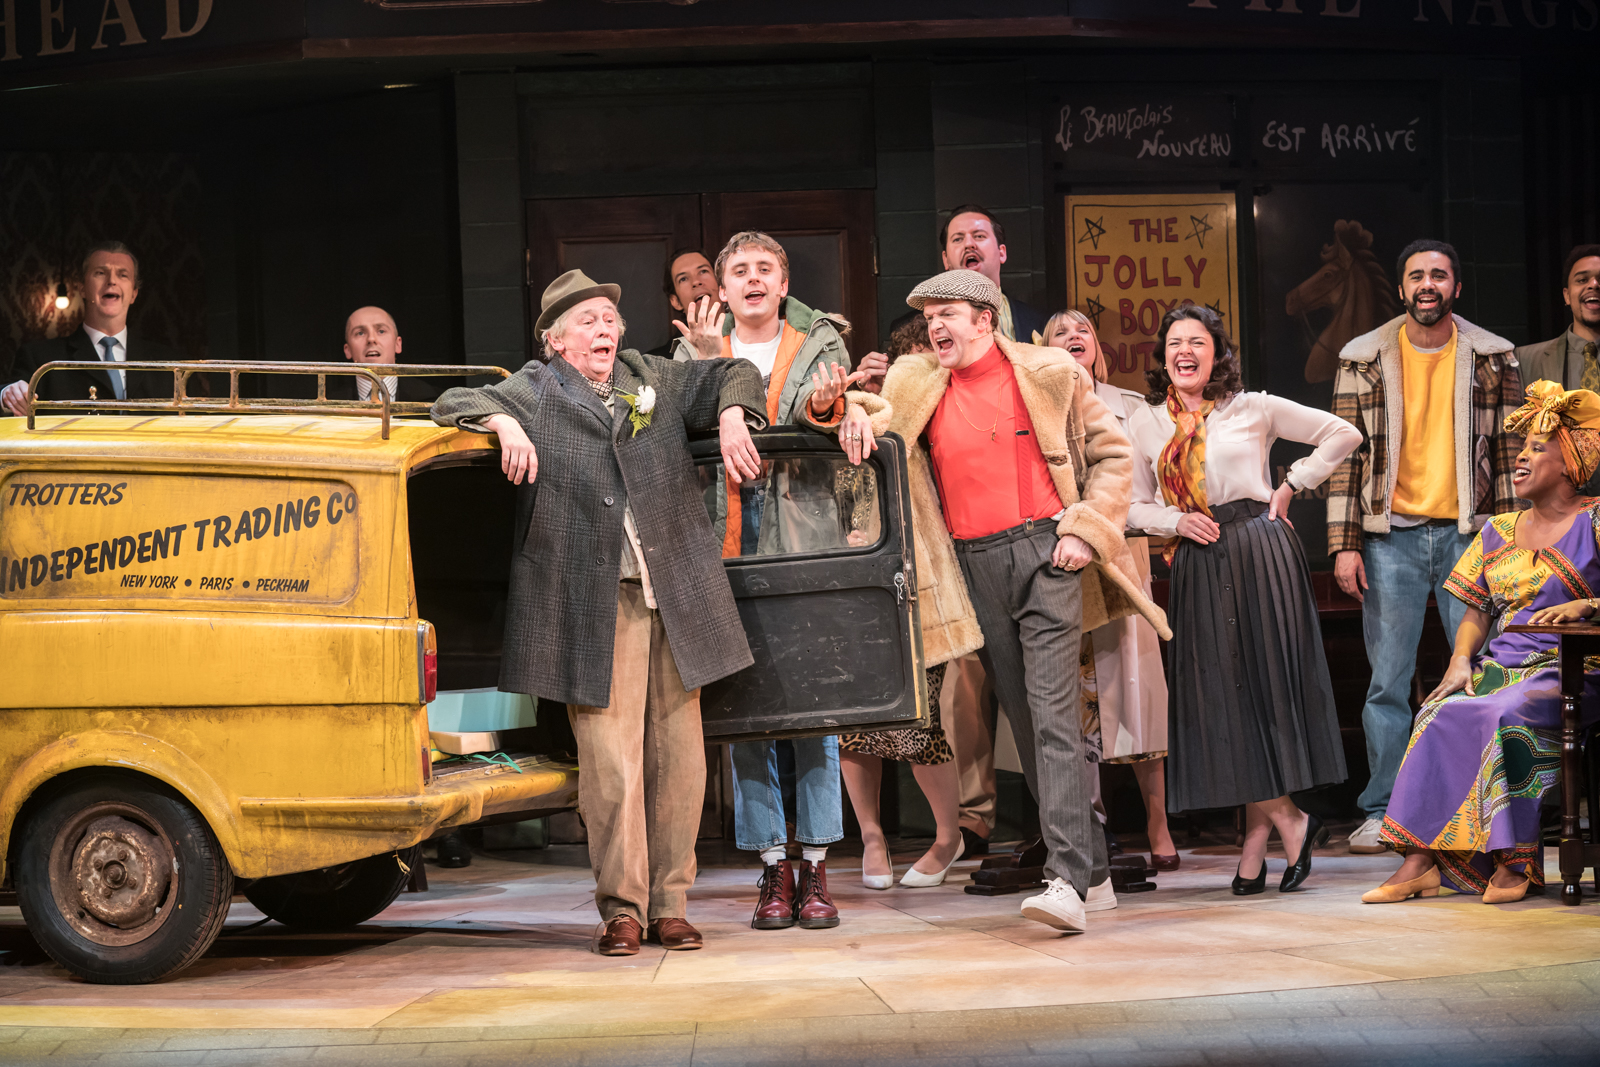 Only Fools and Horses musical production still